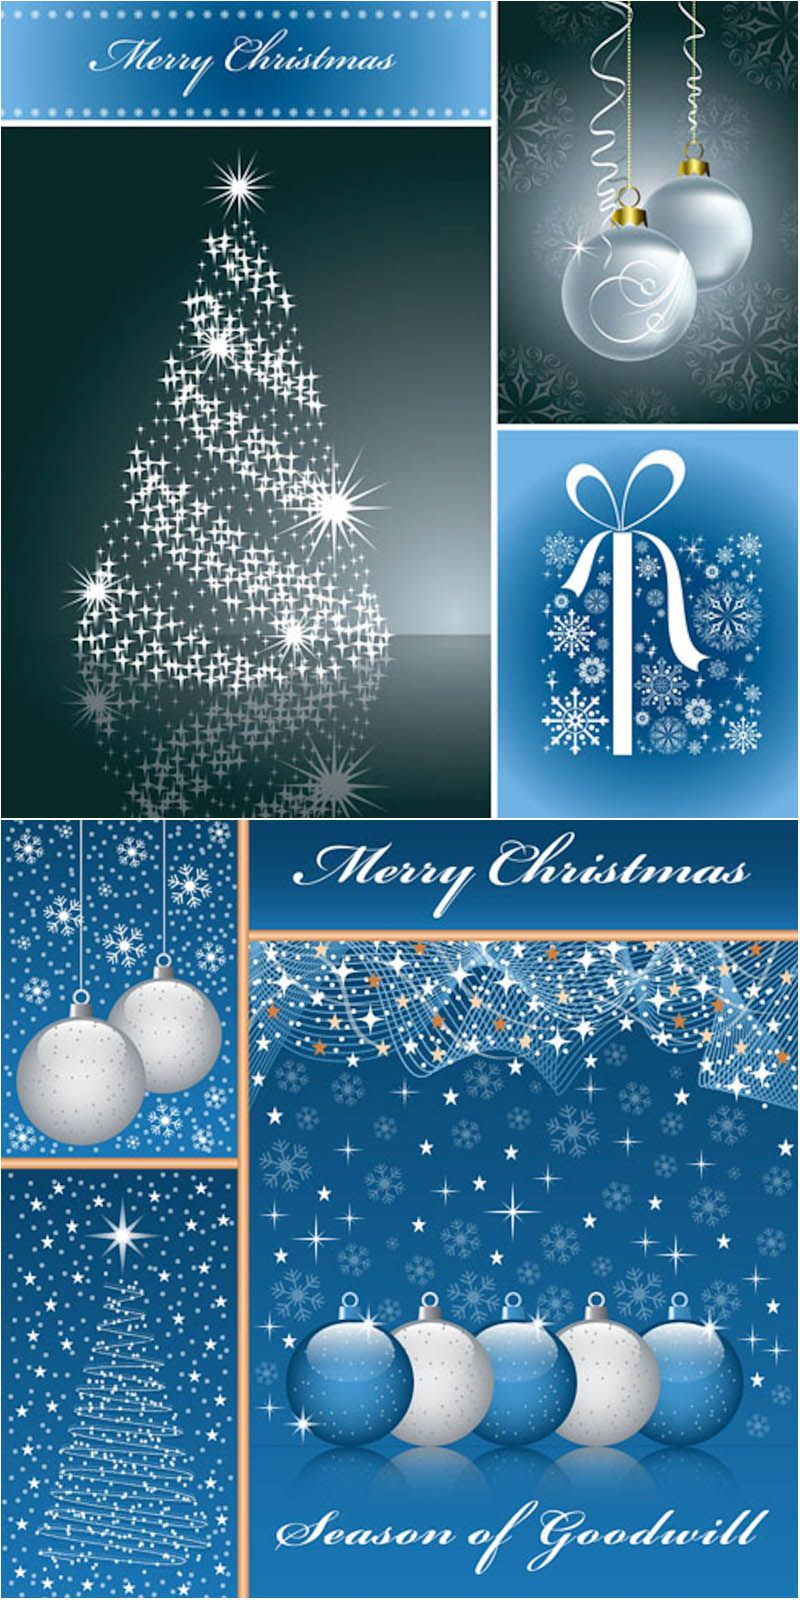 Merry Christmas Backgrounds With Snowflakes Vector Christmas